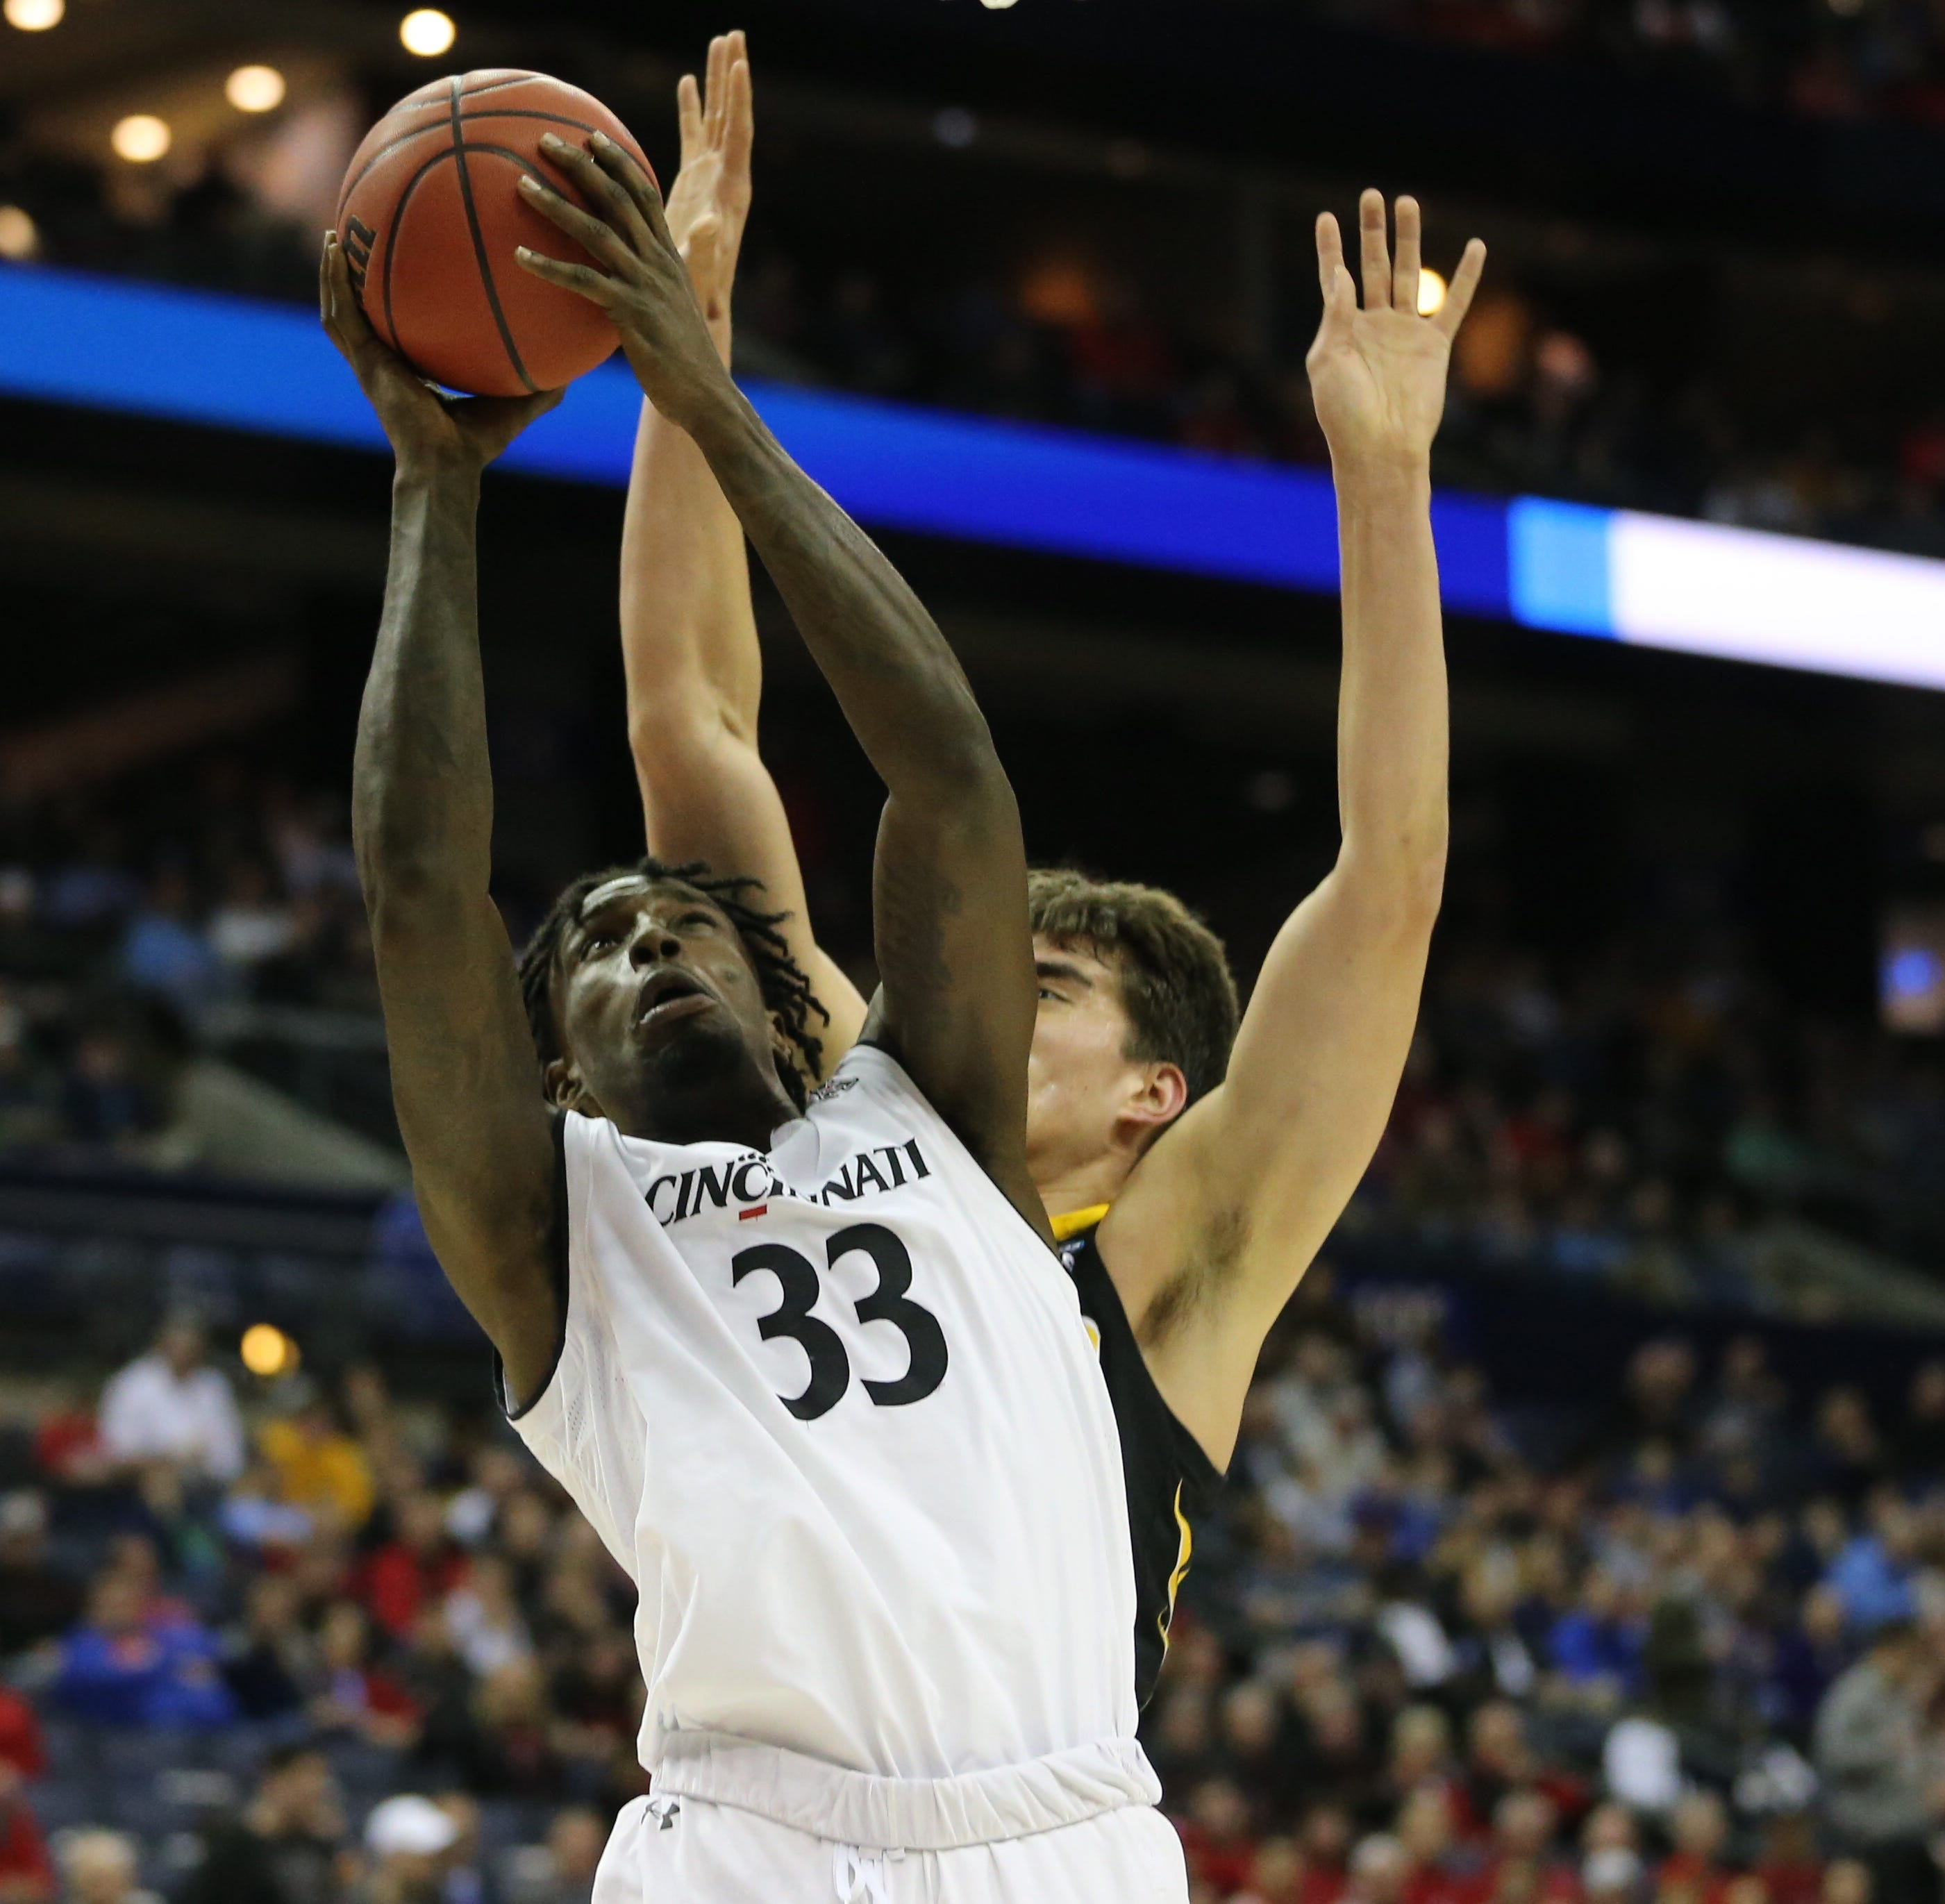 UC Bearcats, once up 13 against Iowa Hawkeyes, lose 79-72 in first round of NCAA Tournament